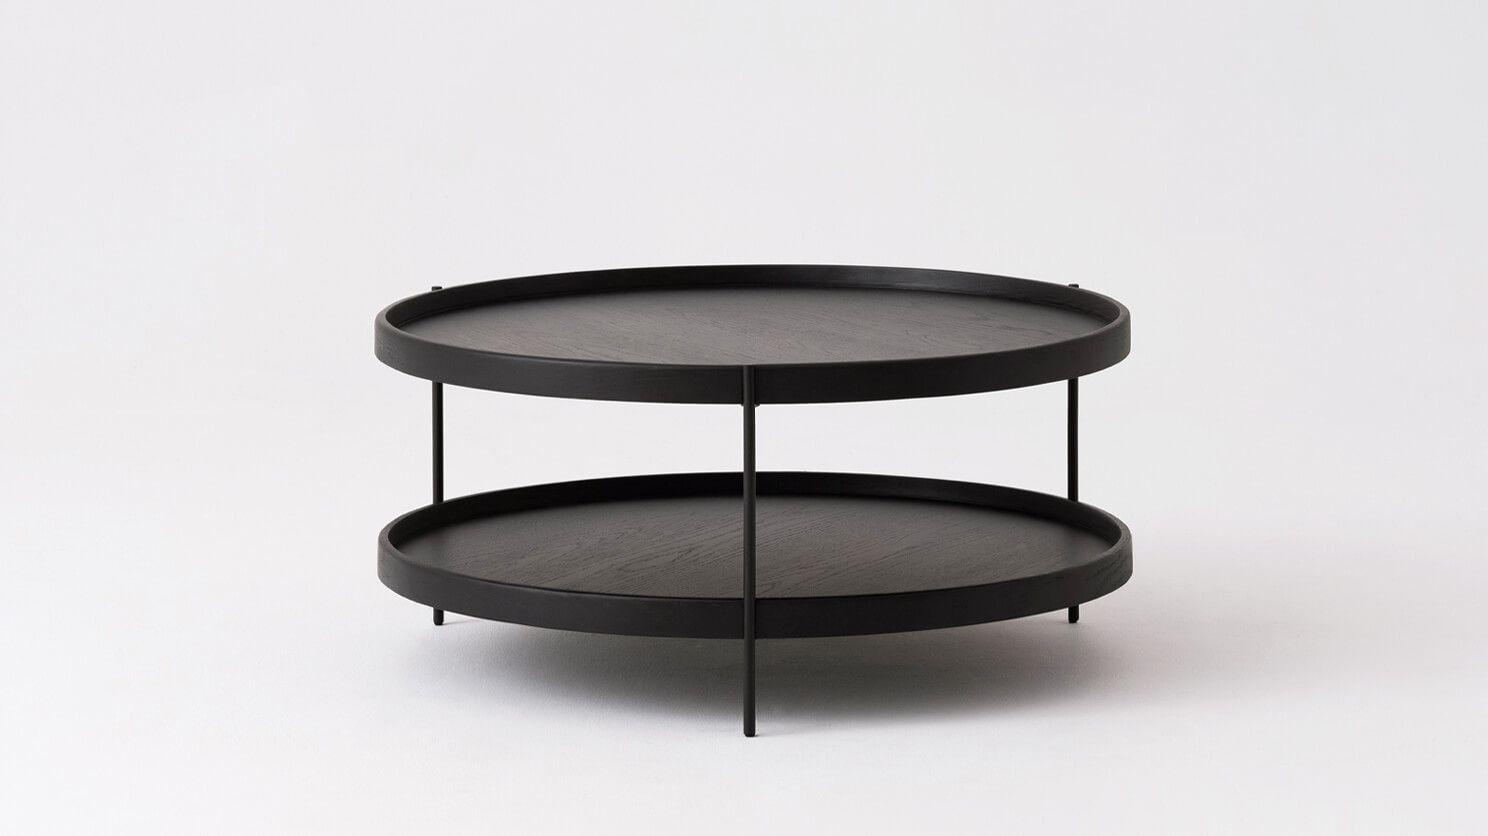 Sage Round Coffee Table Eq3 Round Coffee Table Round Black Coffee Table Coffee Table [ 836 x 1488 Pixel ]